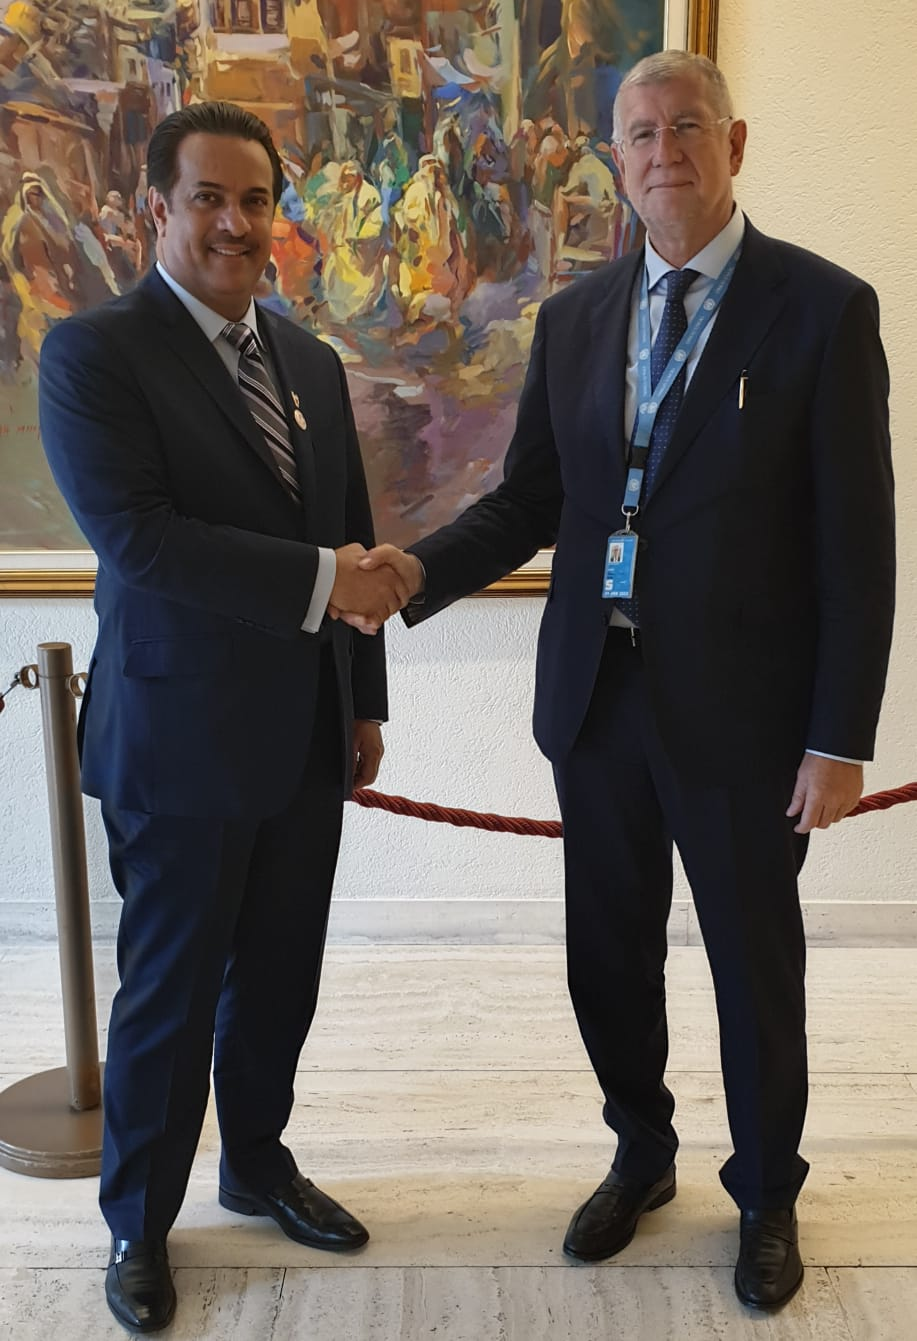 Bahrain's model linking UPR with SDGs 2030 highlighted by assistant